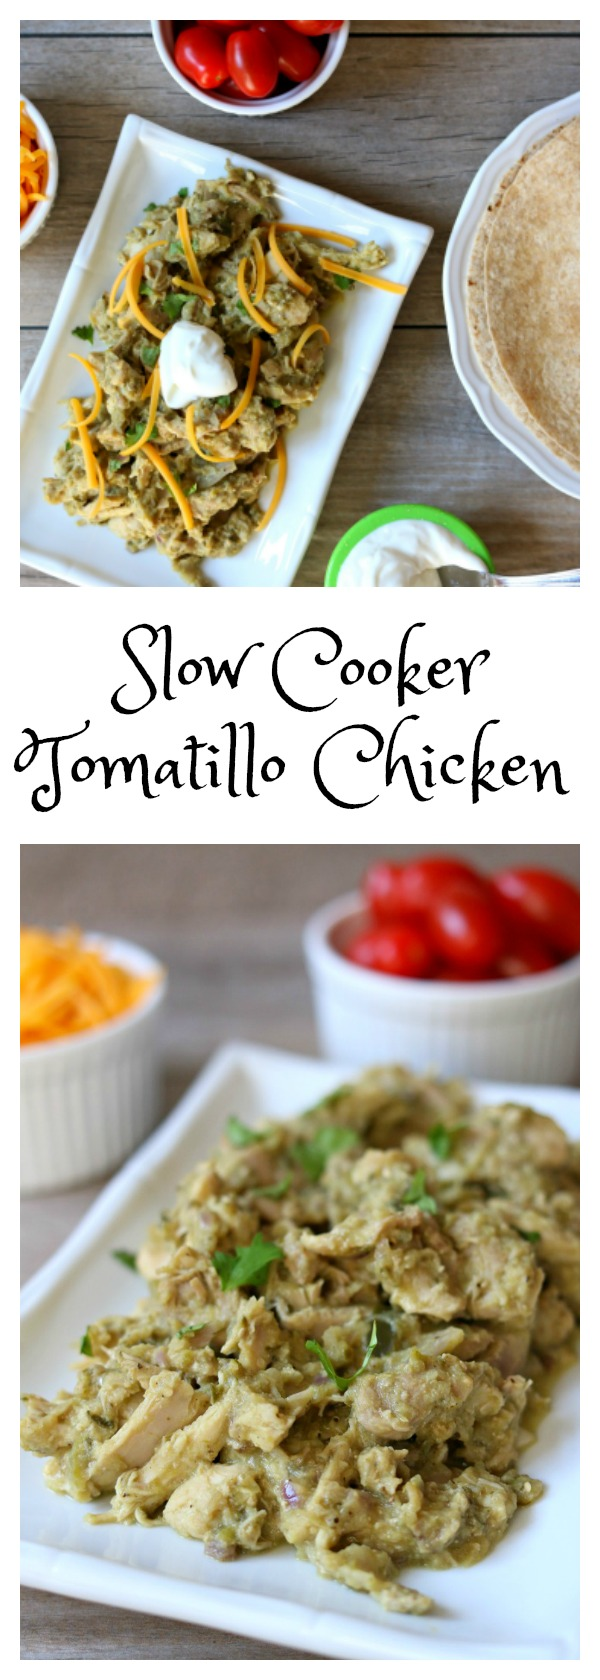 Slow Cooker Tomatillo Chicken Filling: tender, moist pieces of shredded chicken with an almost creamy (but healthy) sauce that is tomatillo based. This Slow Cooker Tomatillo Chicken Filling is perfect for tacos, enchiladas, burritos, salads or plain!